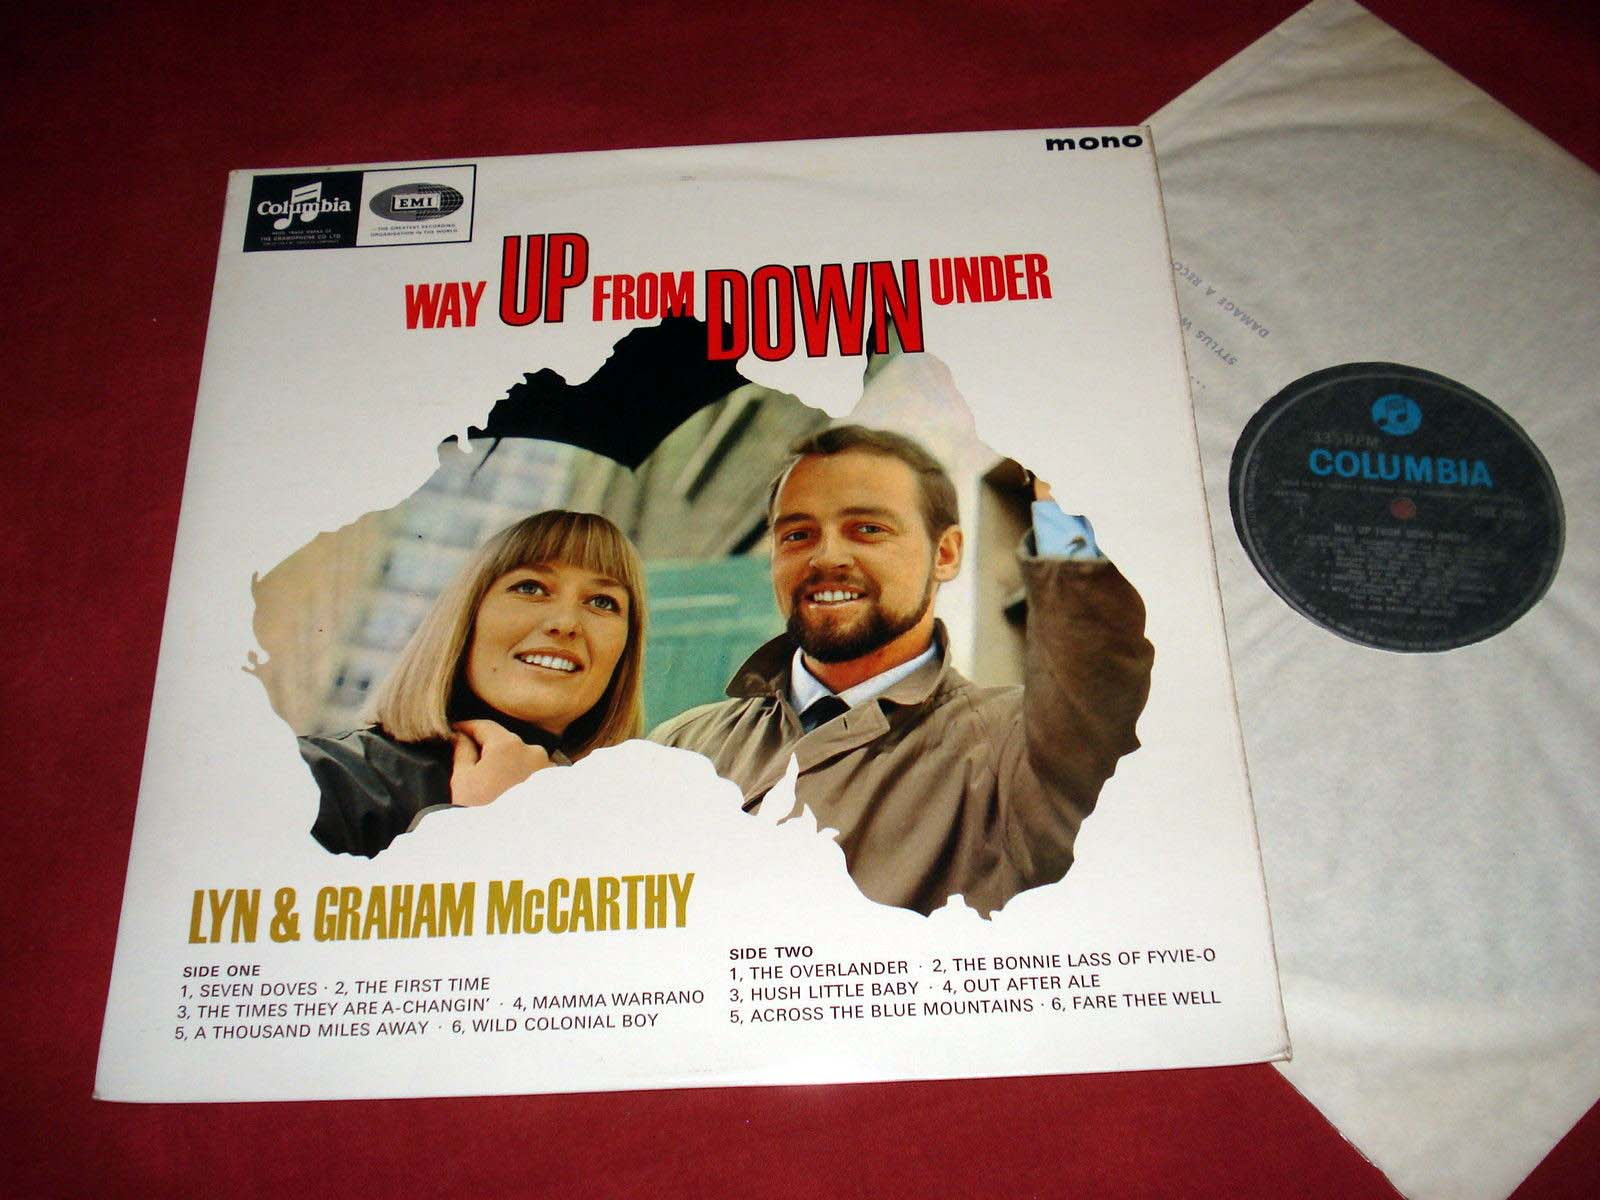 LYN & GRAHAM McCARTHY - Way up from down under